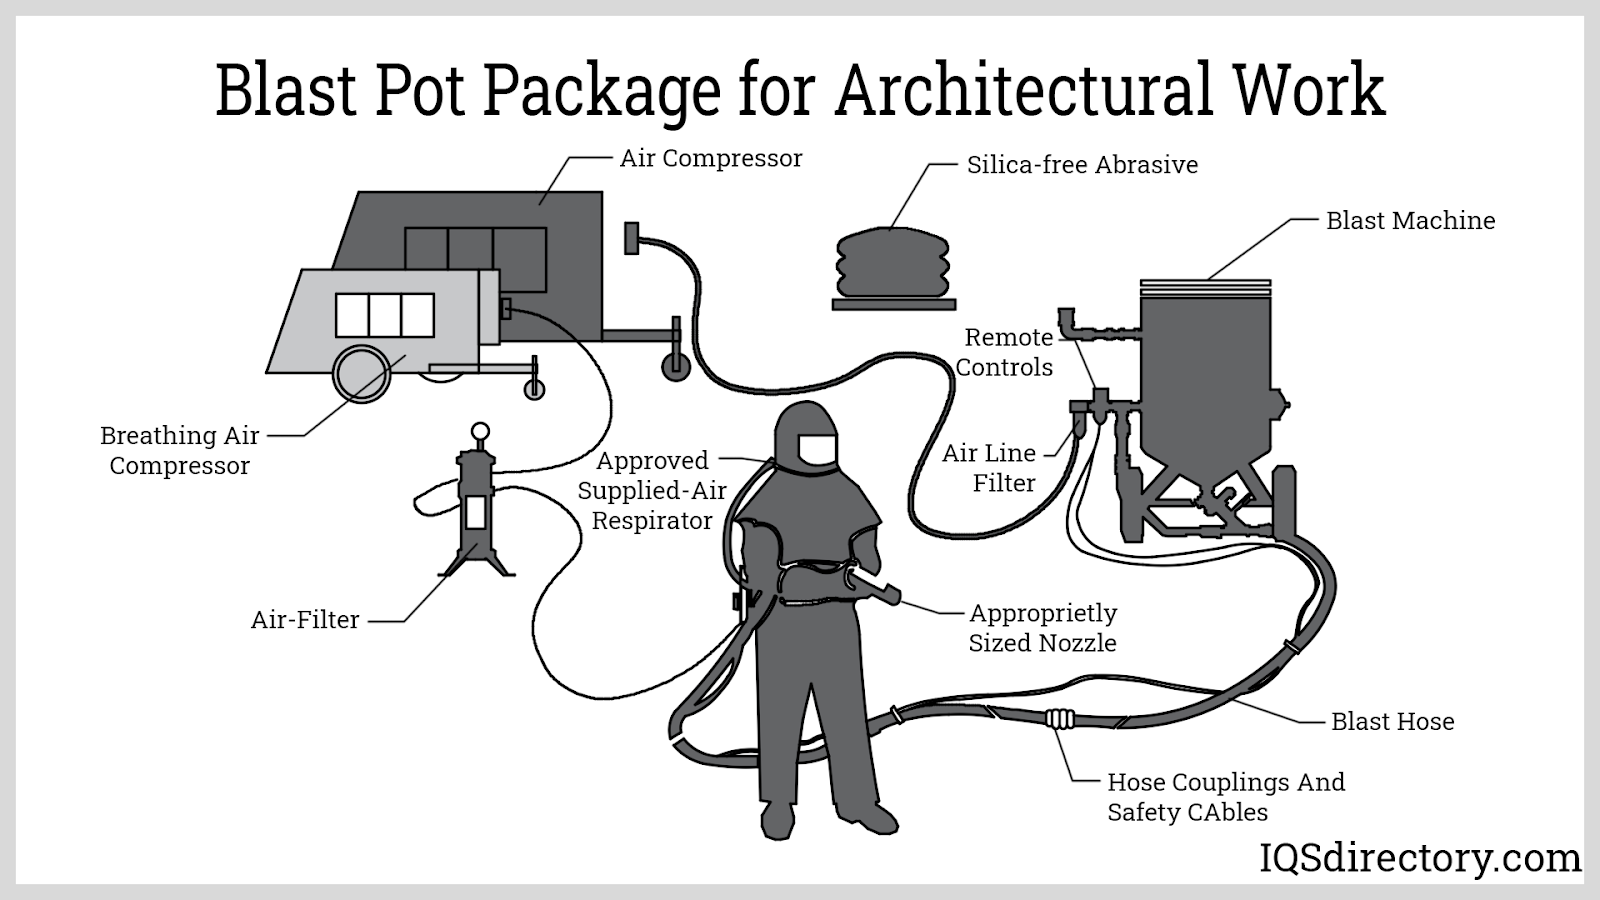 Blast Pot Package for Architectural Work